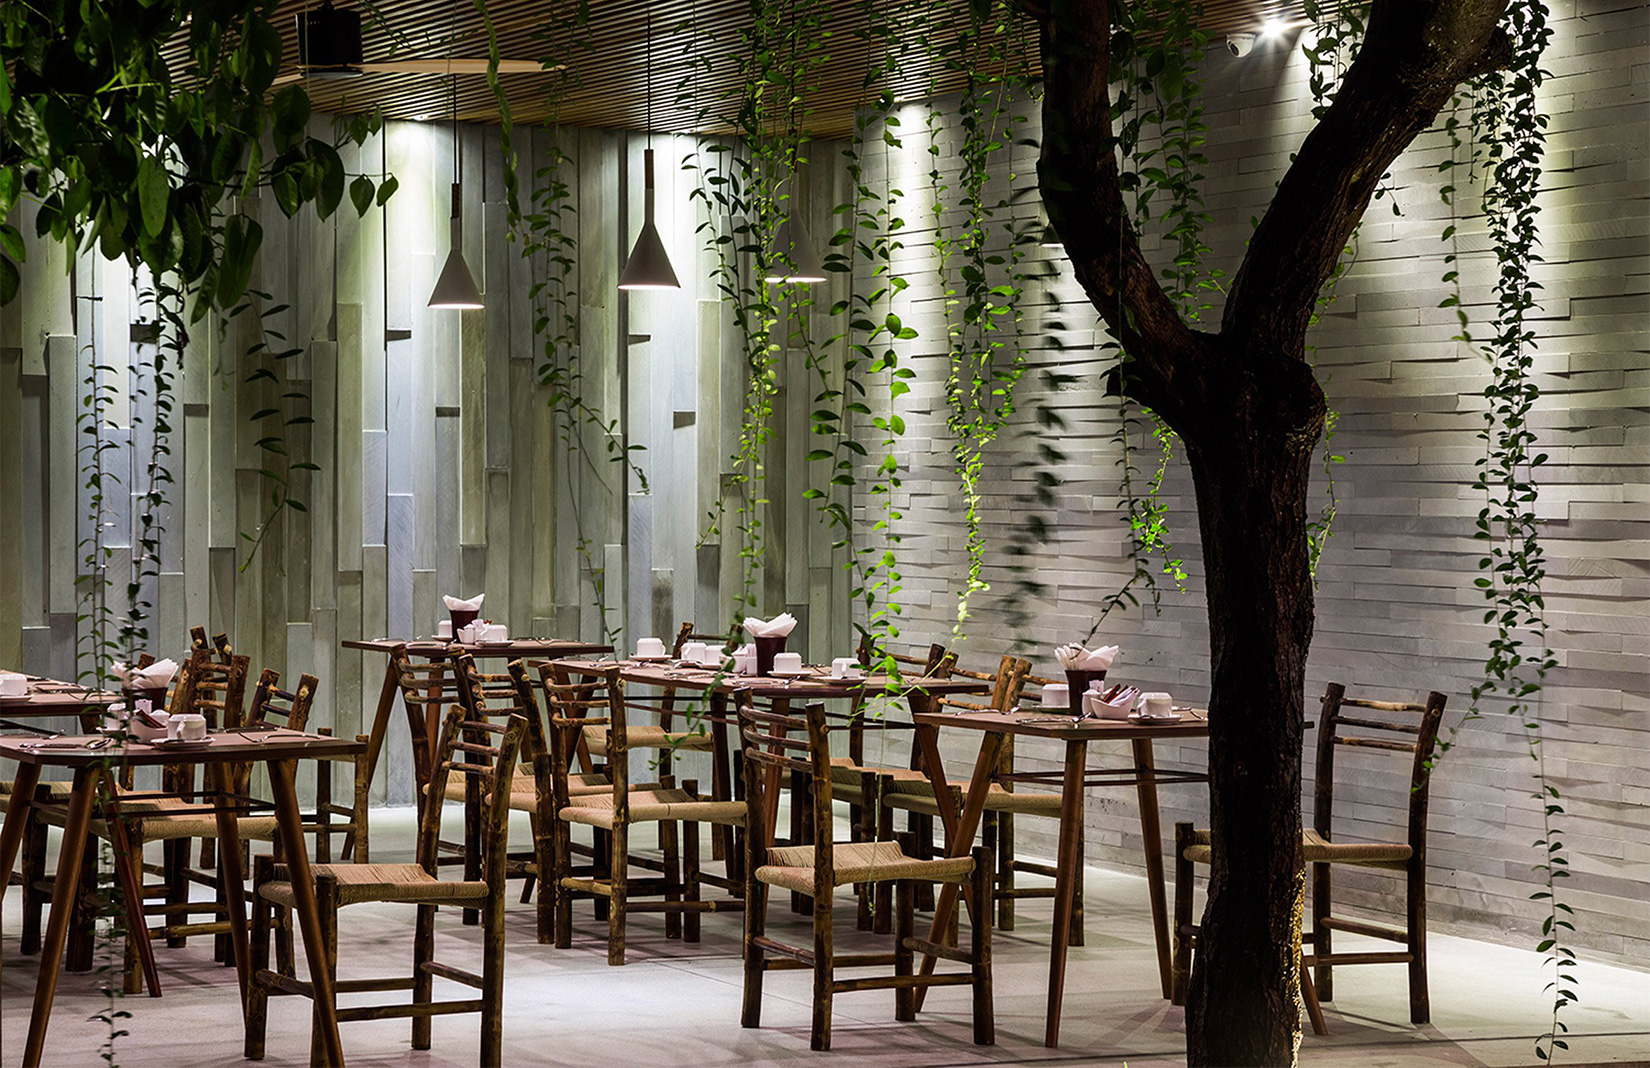 Vietnam hotel designed by architect Vo Trong Nghia